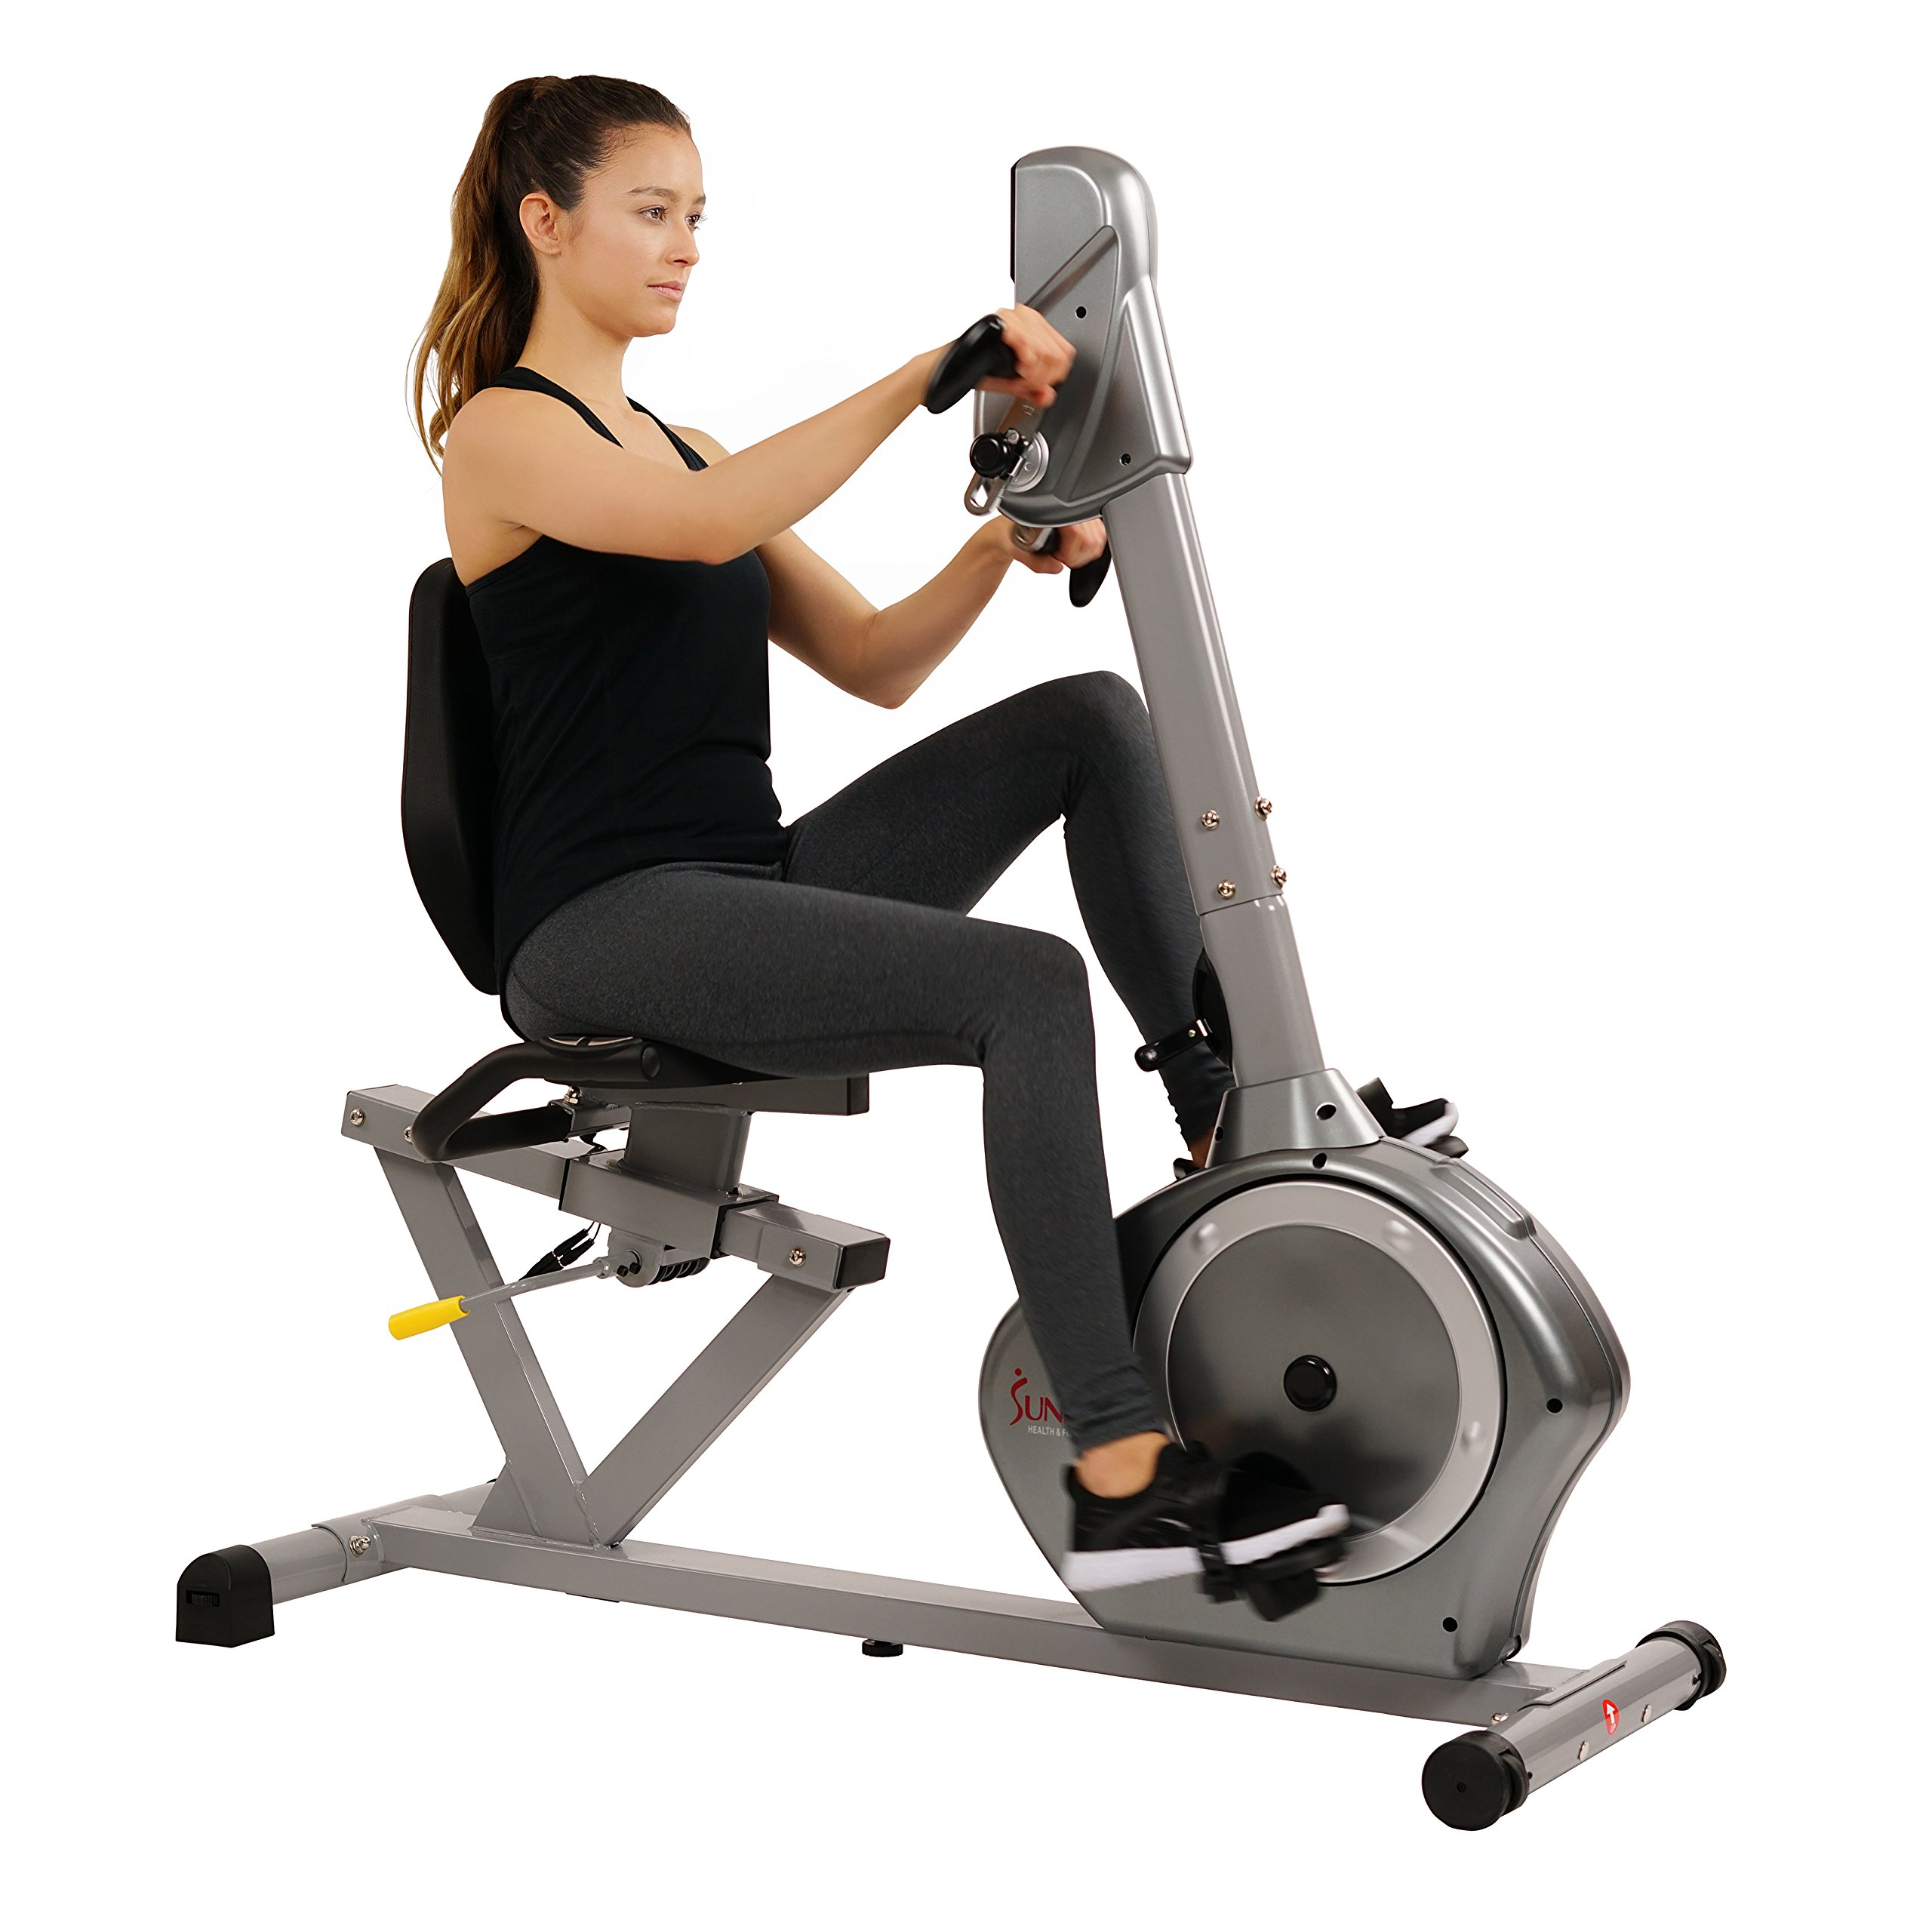 Sunny Health & Fitness Magnetic Recumbent Bike Exercise Bike, 350lb High Weight Capacity, Arm Exercisers, Monitor, Pulse Rate Monitoring - SF-RB4631 by Sunny Health & Fitness